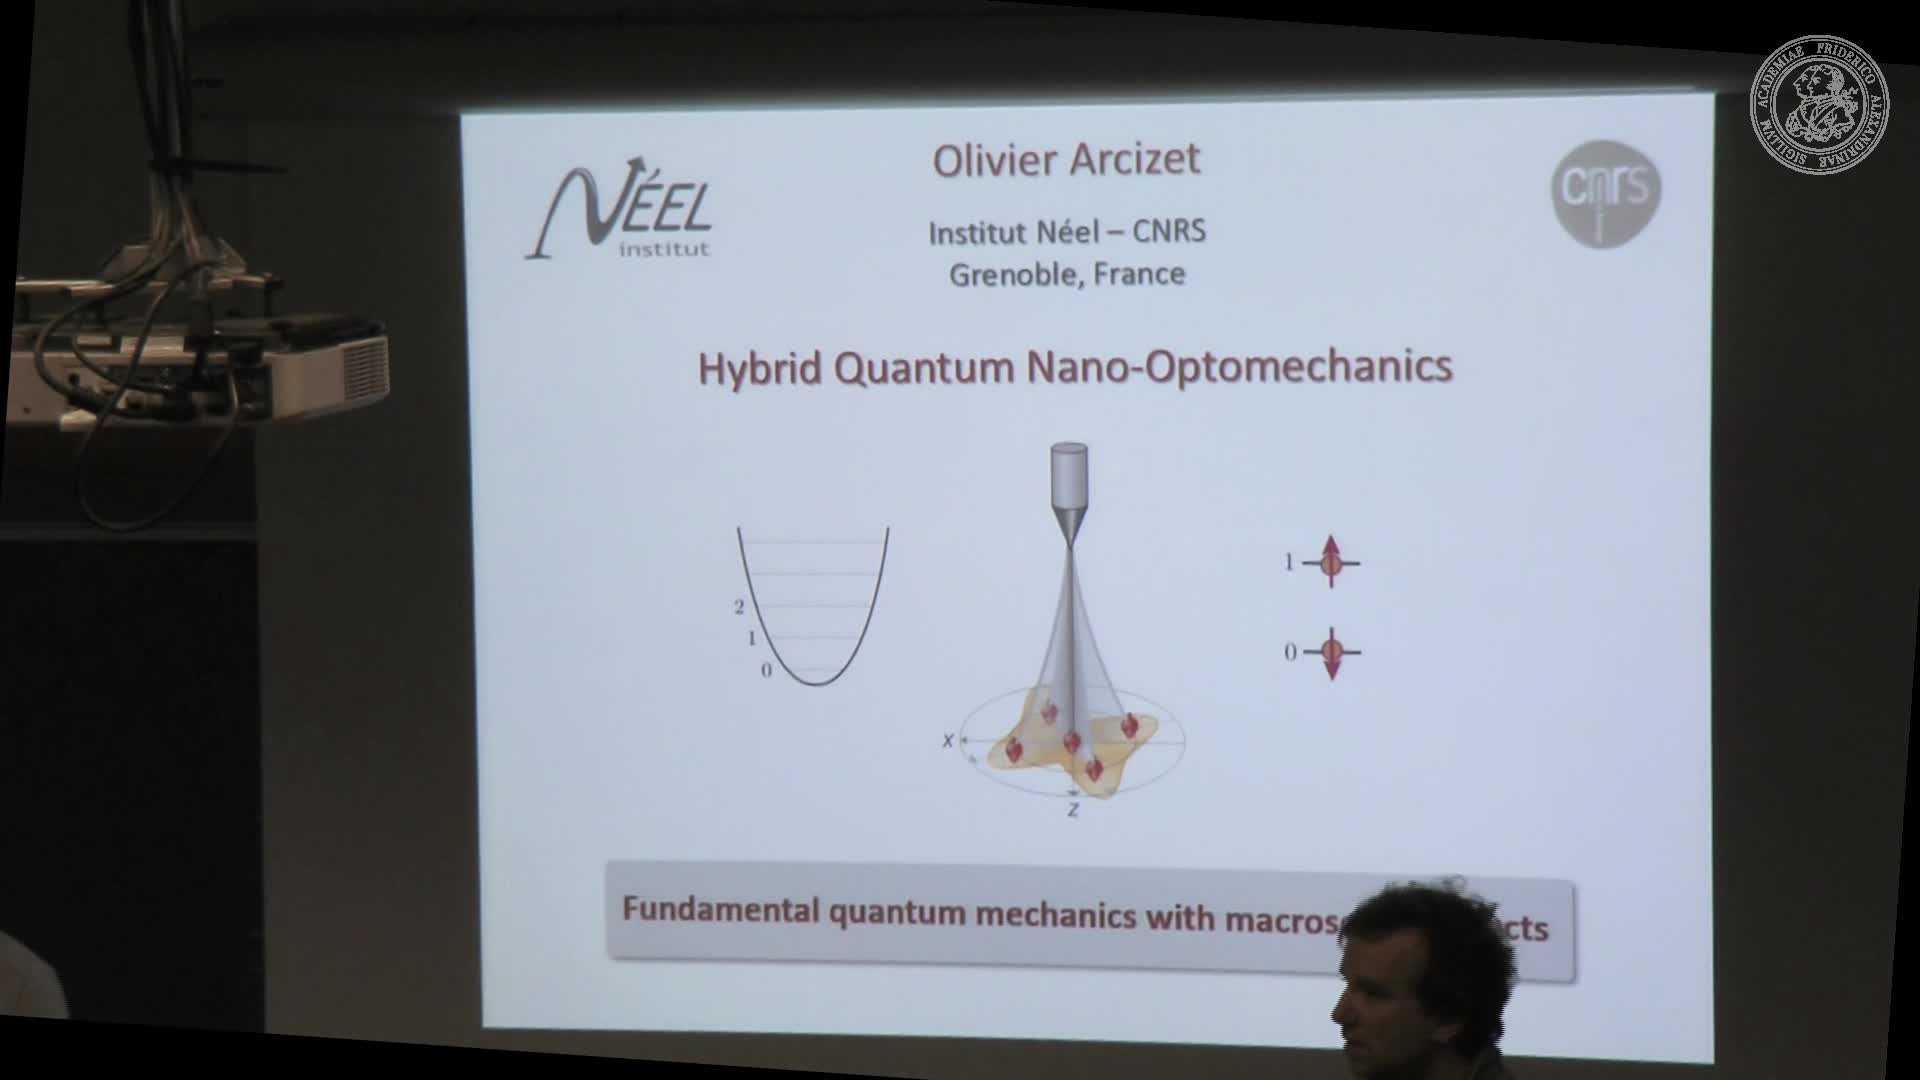 Hybrid Quantum Nano-Optomechanics preview image